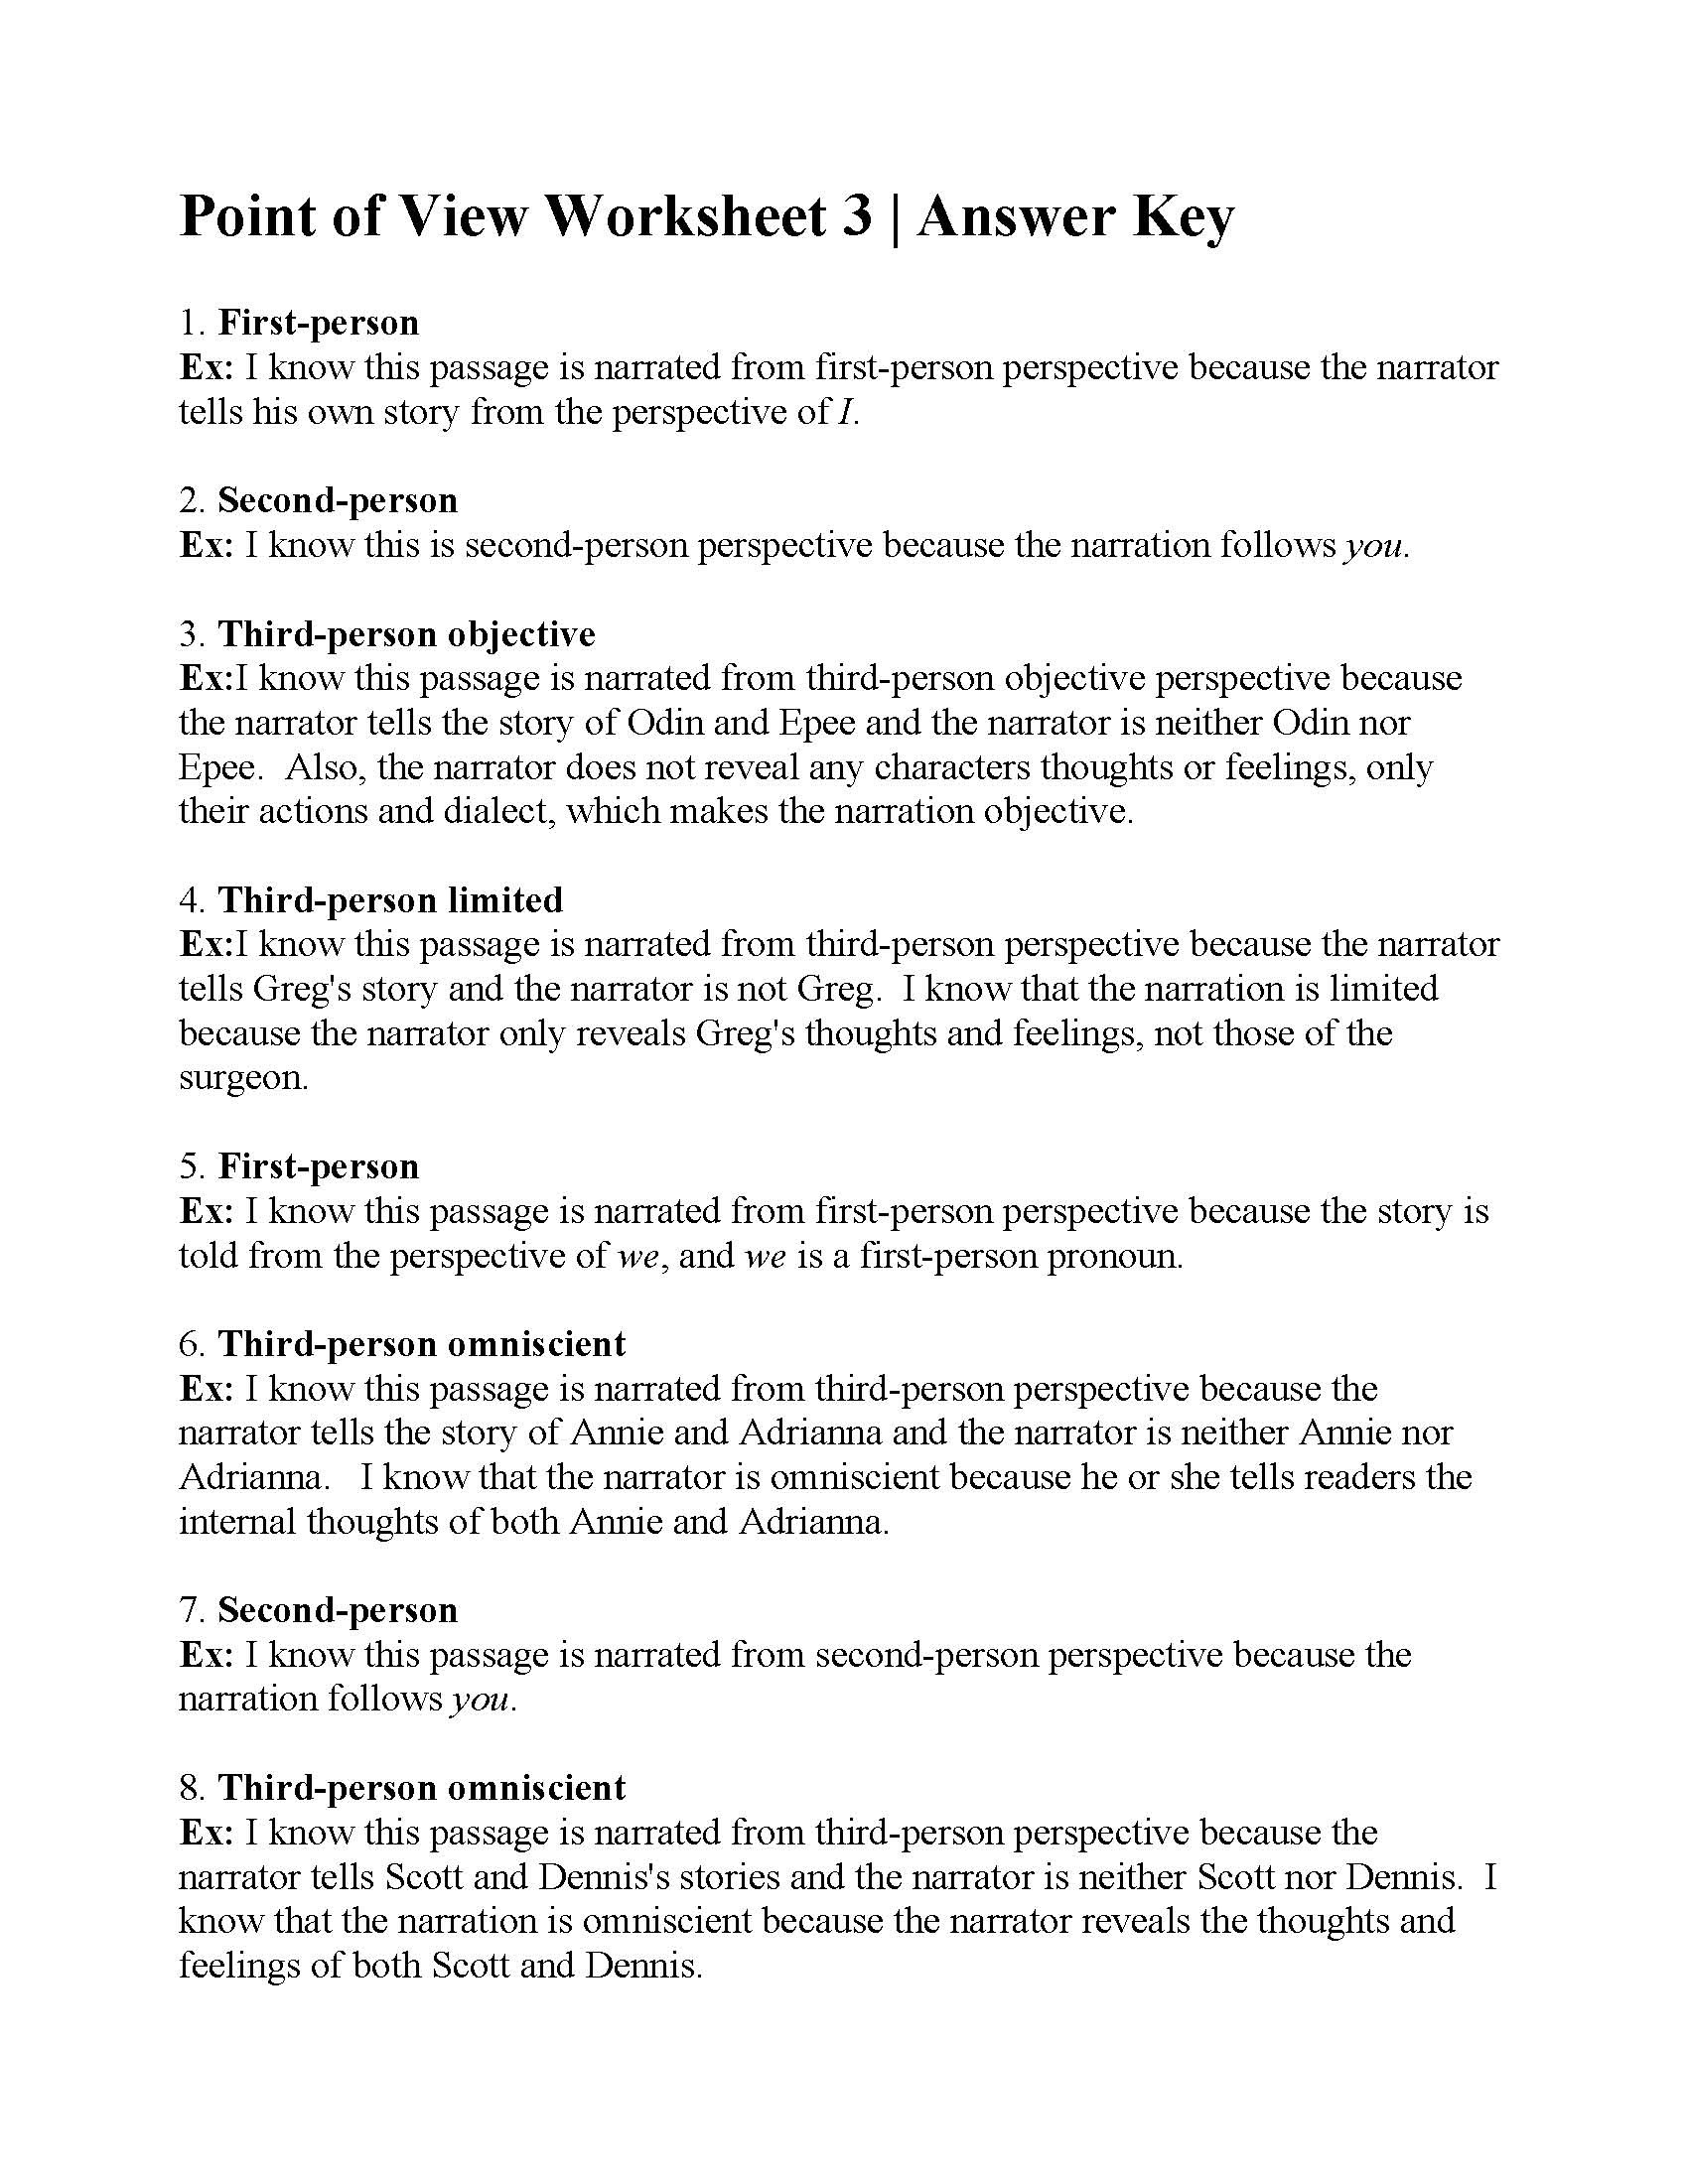 Point Of View Worksheet 3 Answers